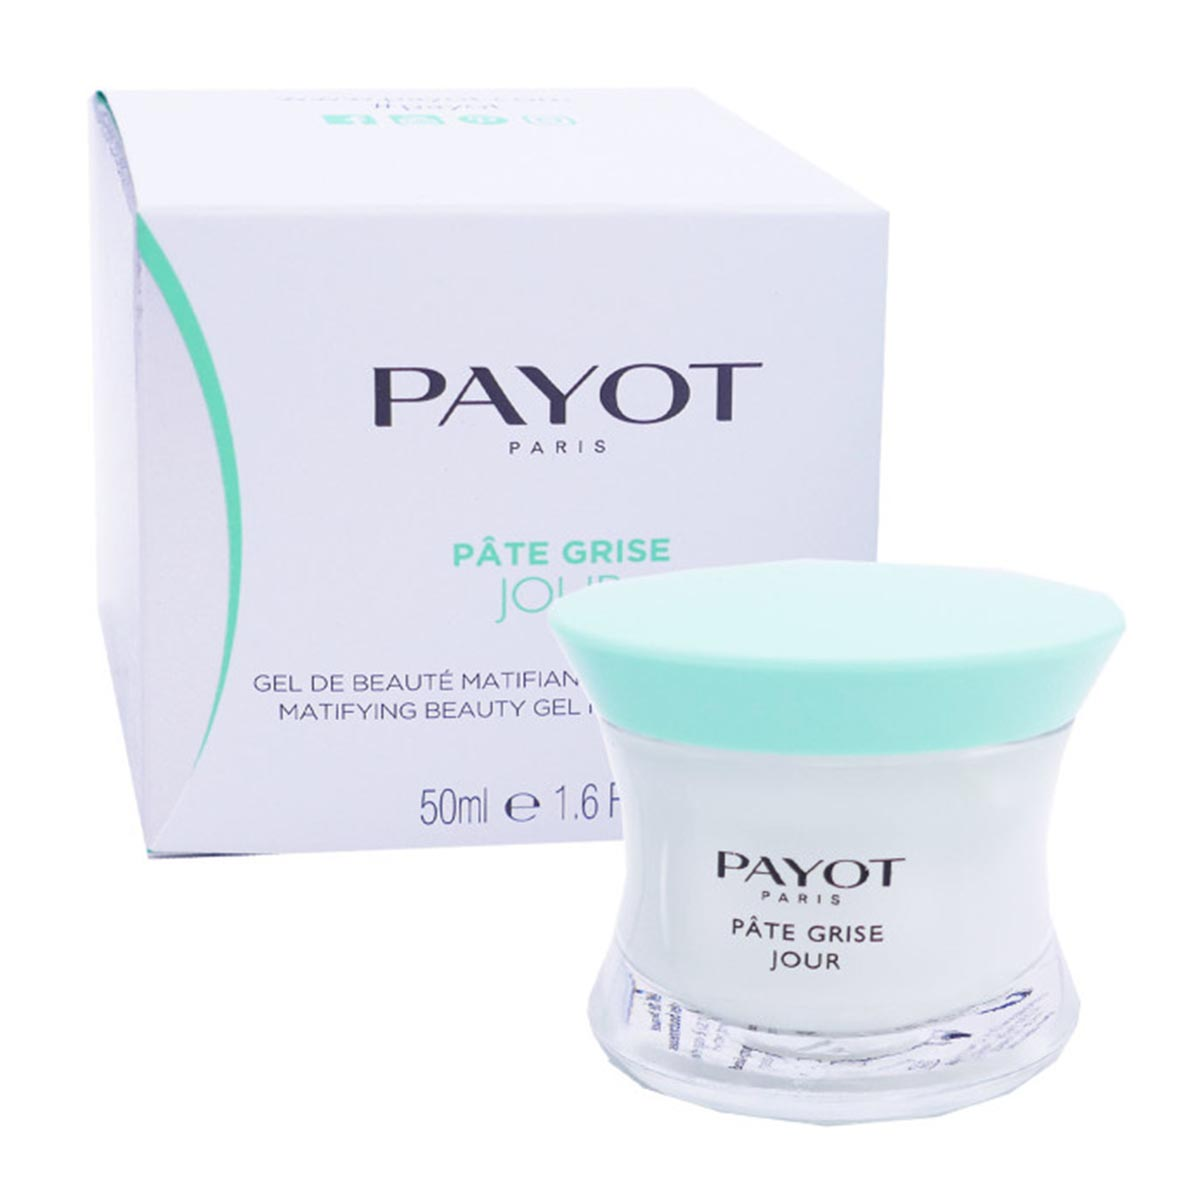 Payot pate grise jour day 50ml